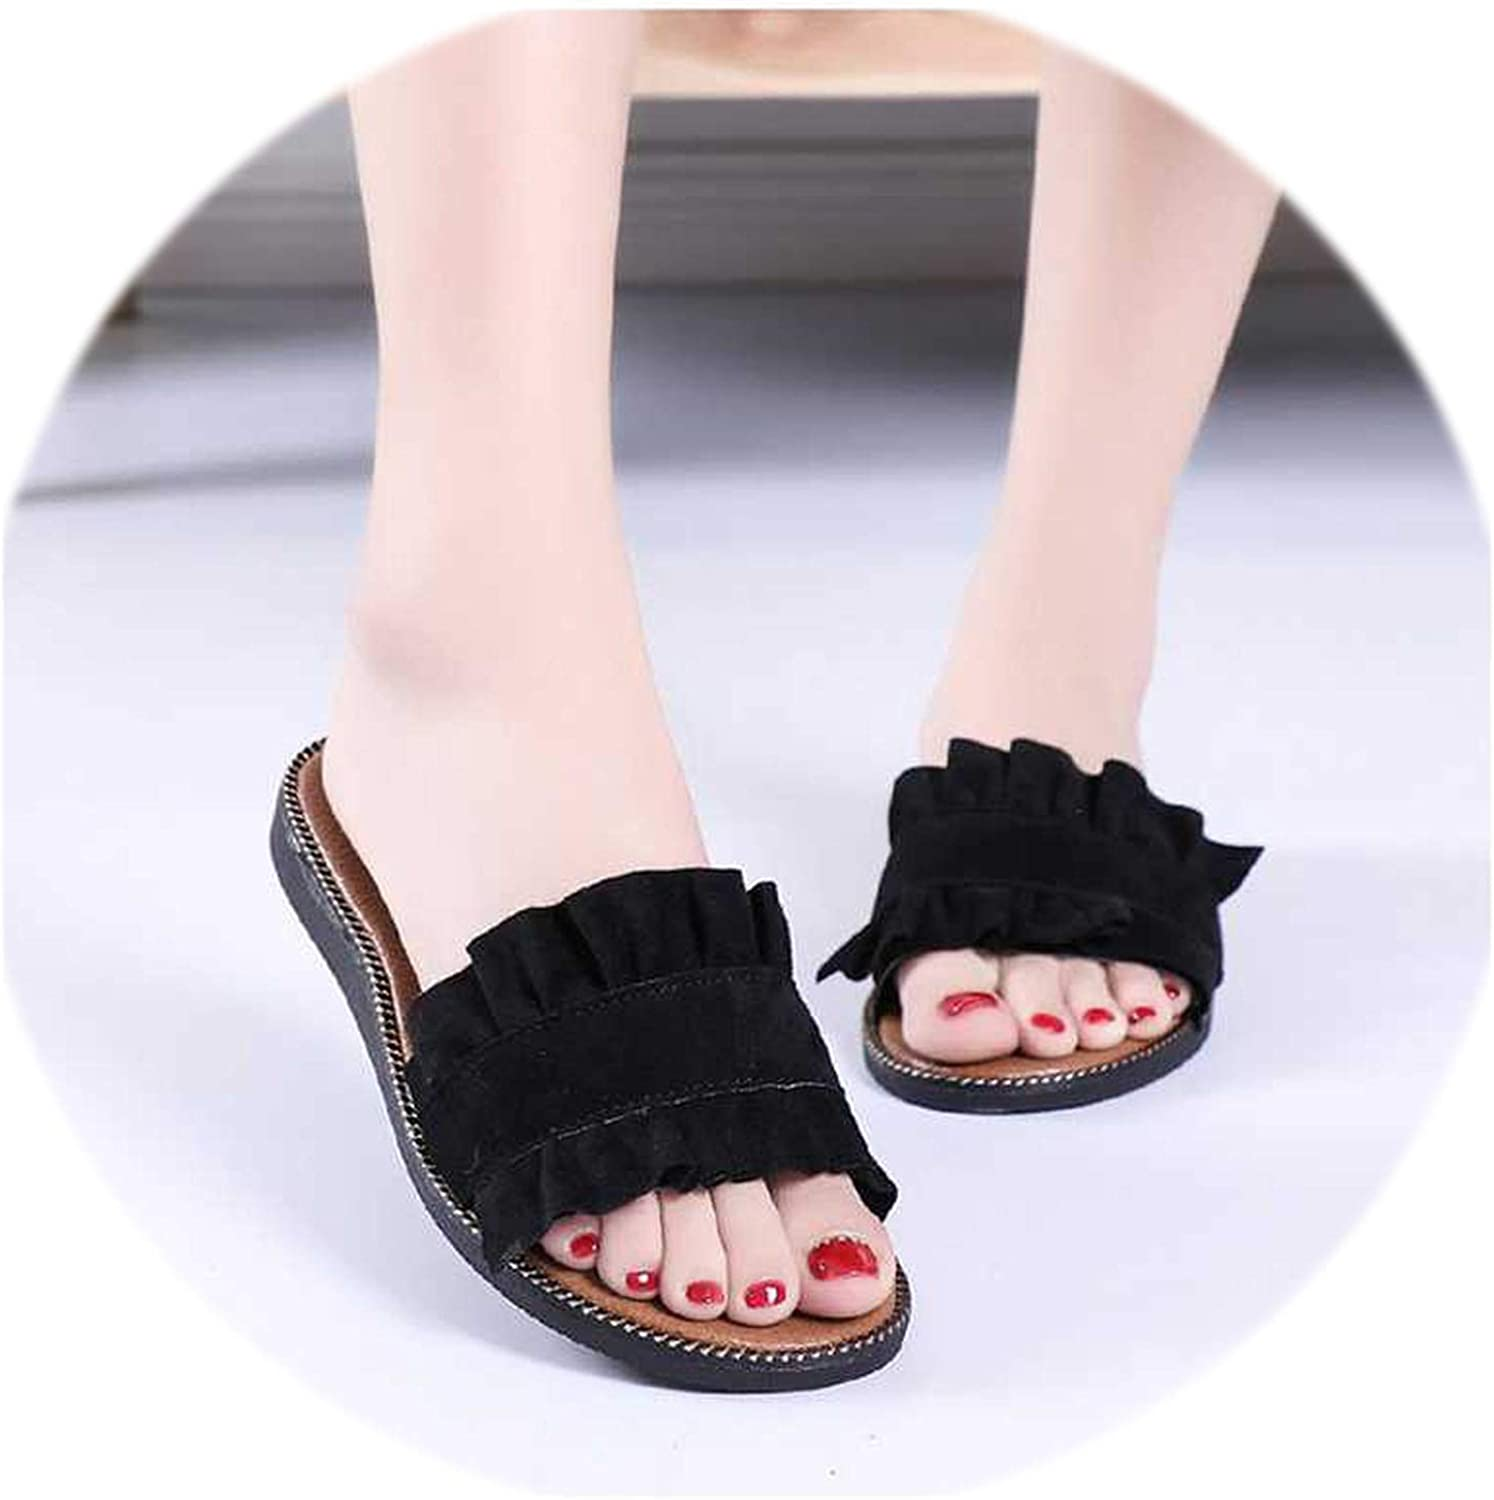 Rather be Summer Fashion Ruffles Flat Slippers Beach Slippers Home Flip Flops Slides Comfortable Home Flat Sandal shoes